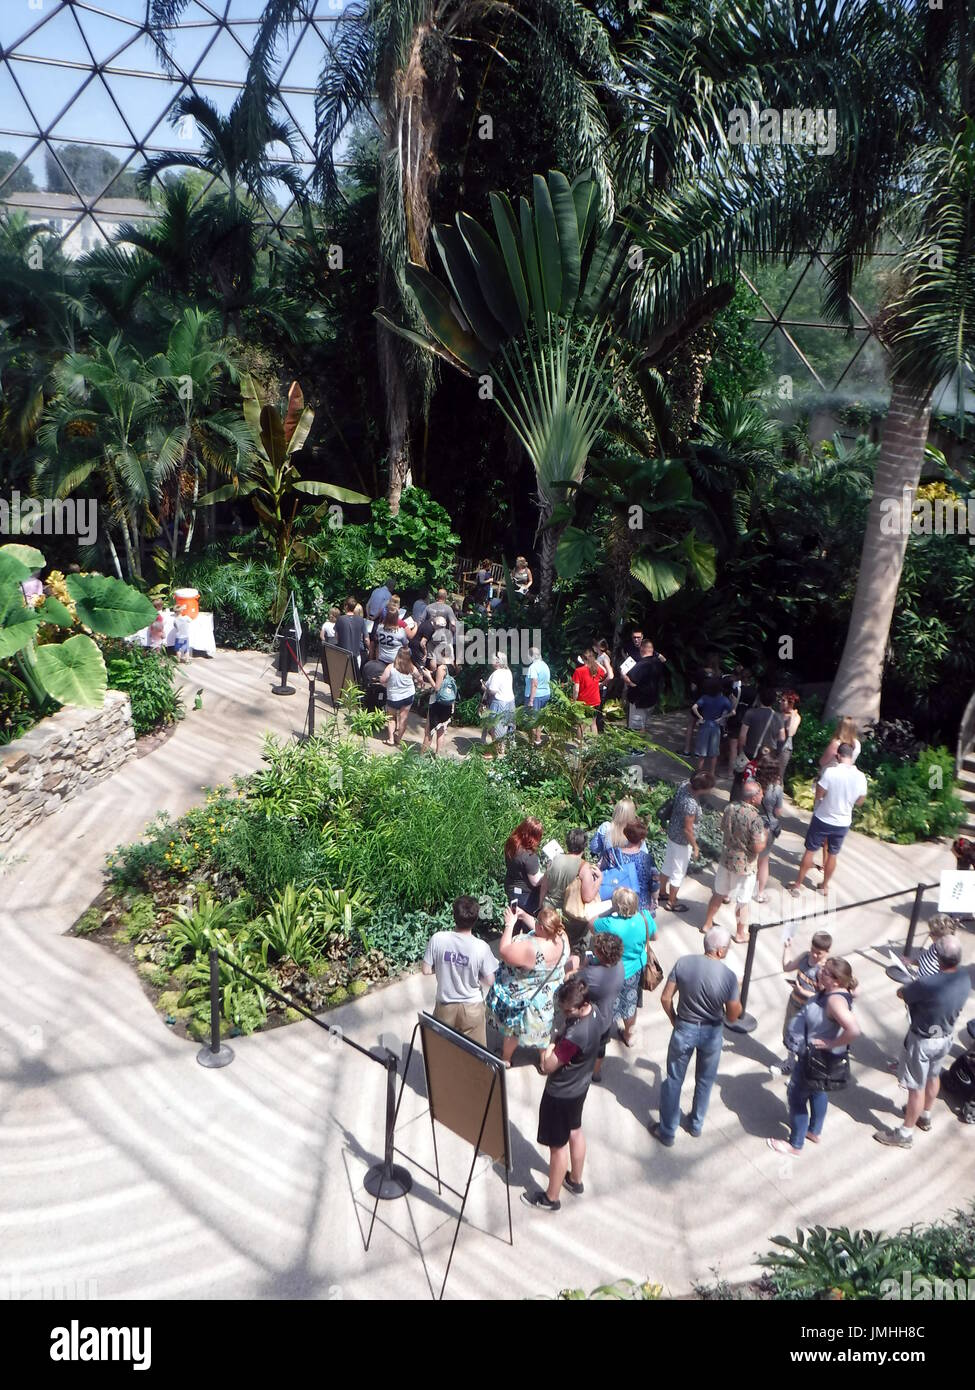 People Line Up In The Greater Des Moines Botanical Garden To View The Titan  Arum Plant